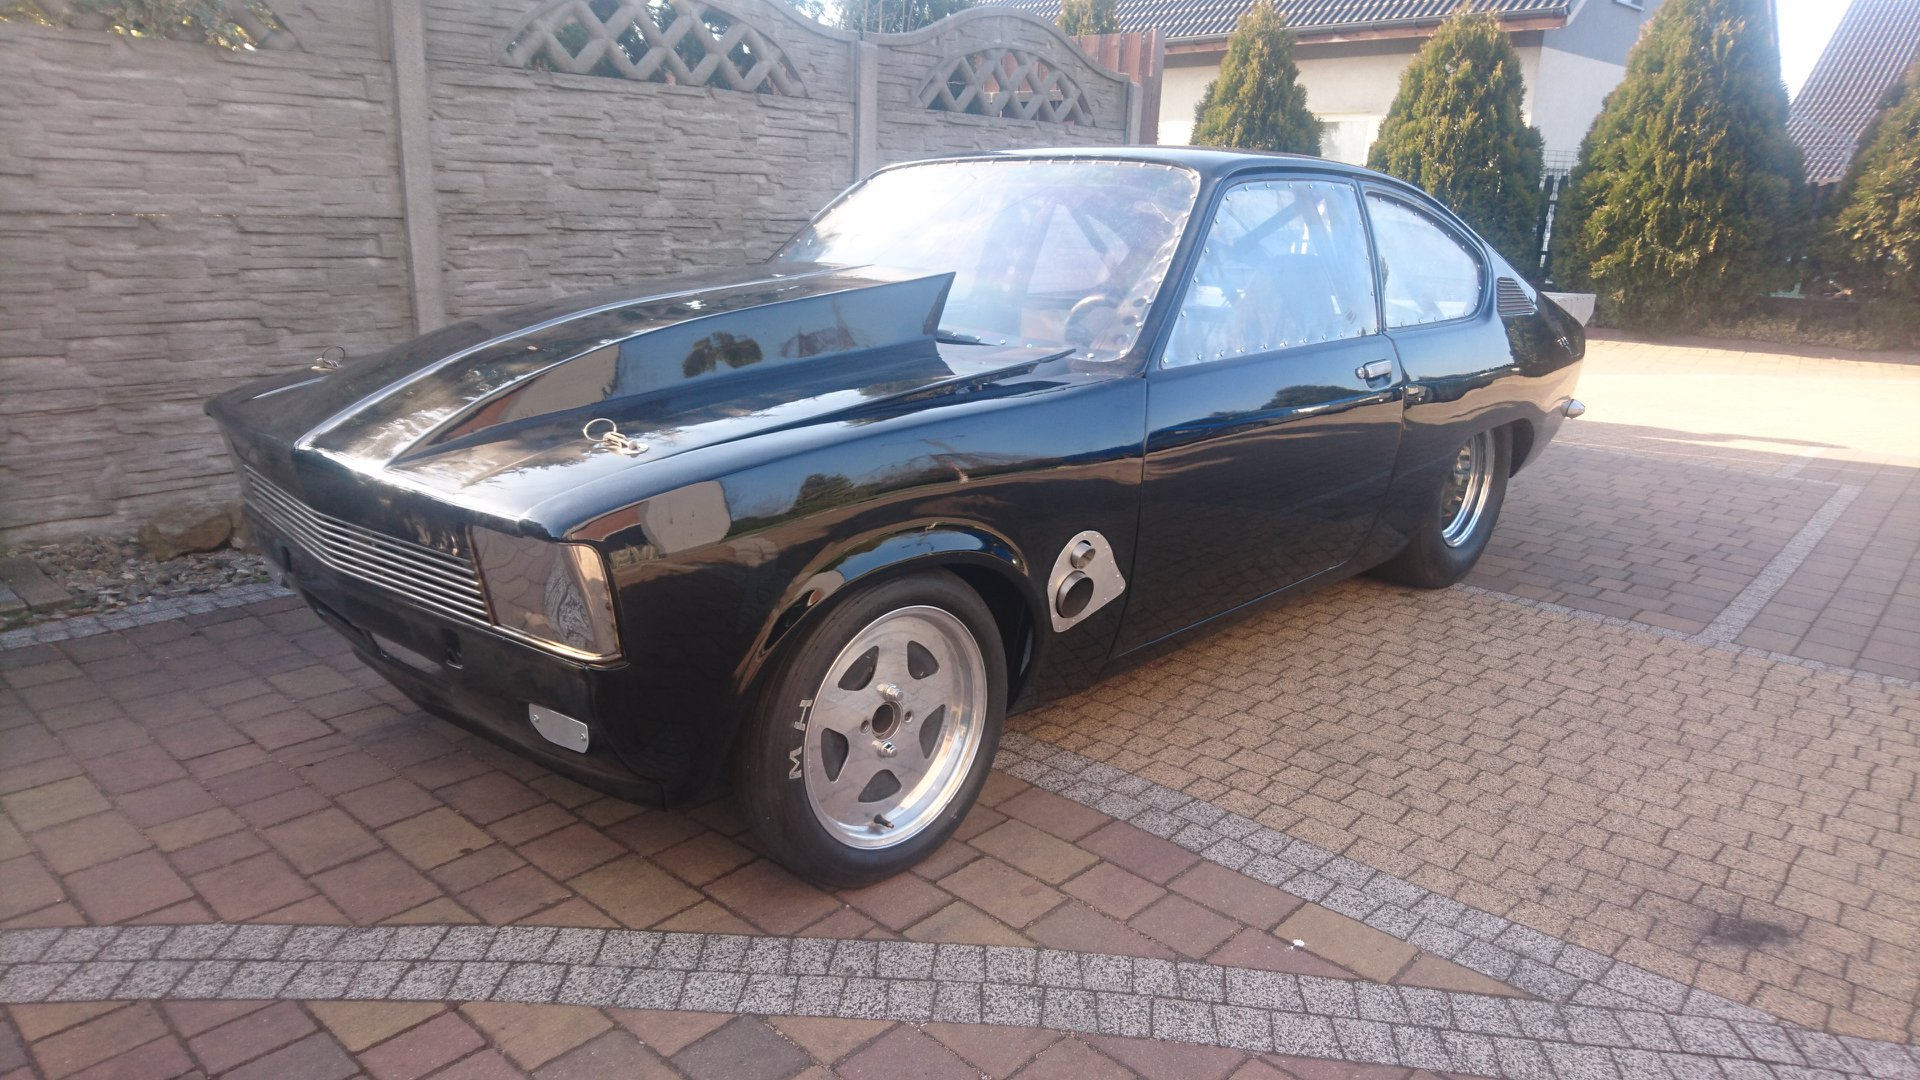 For Sale 1981 Opel Kadett With A Turbo C20xe Inline Four Engine Swap Depot